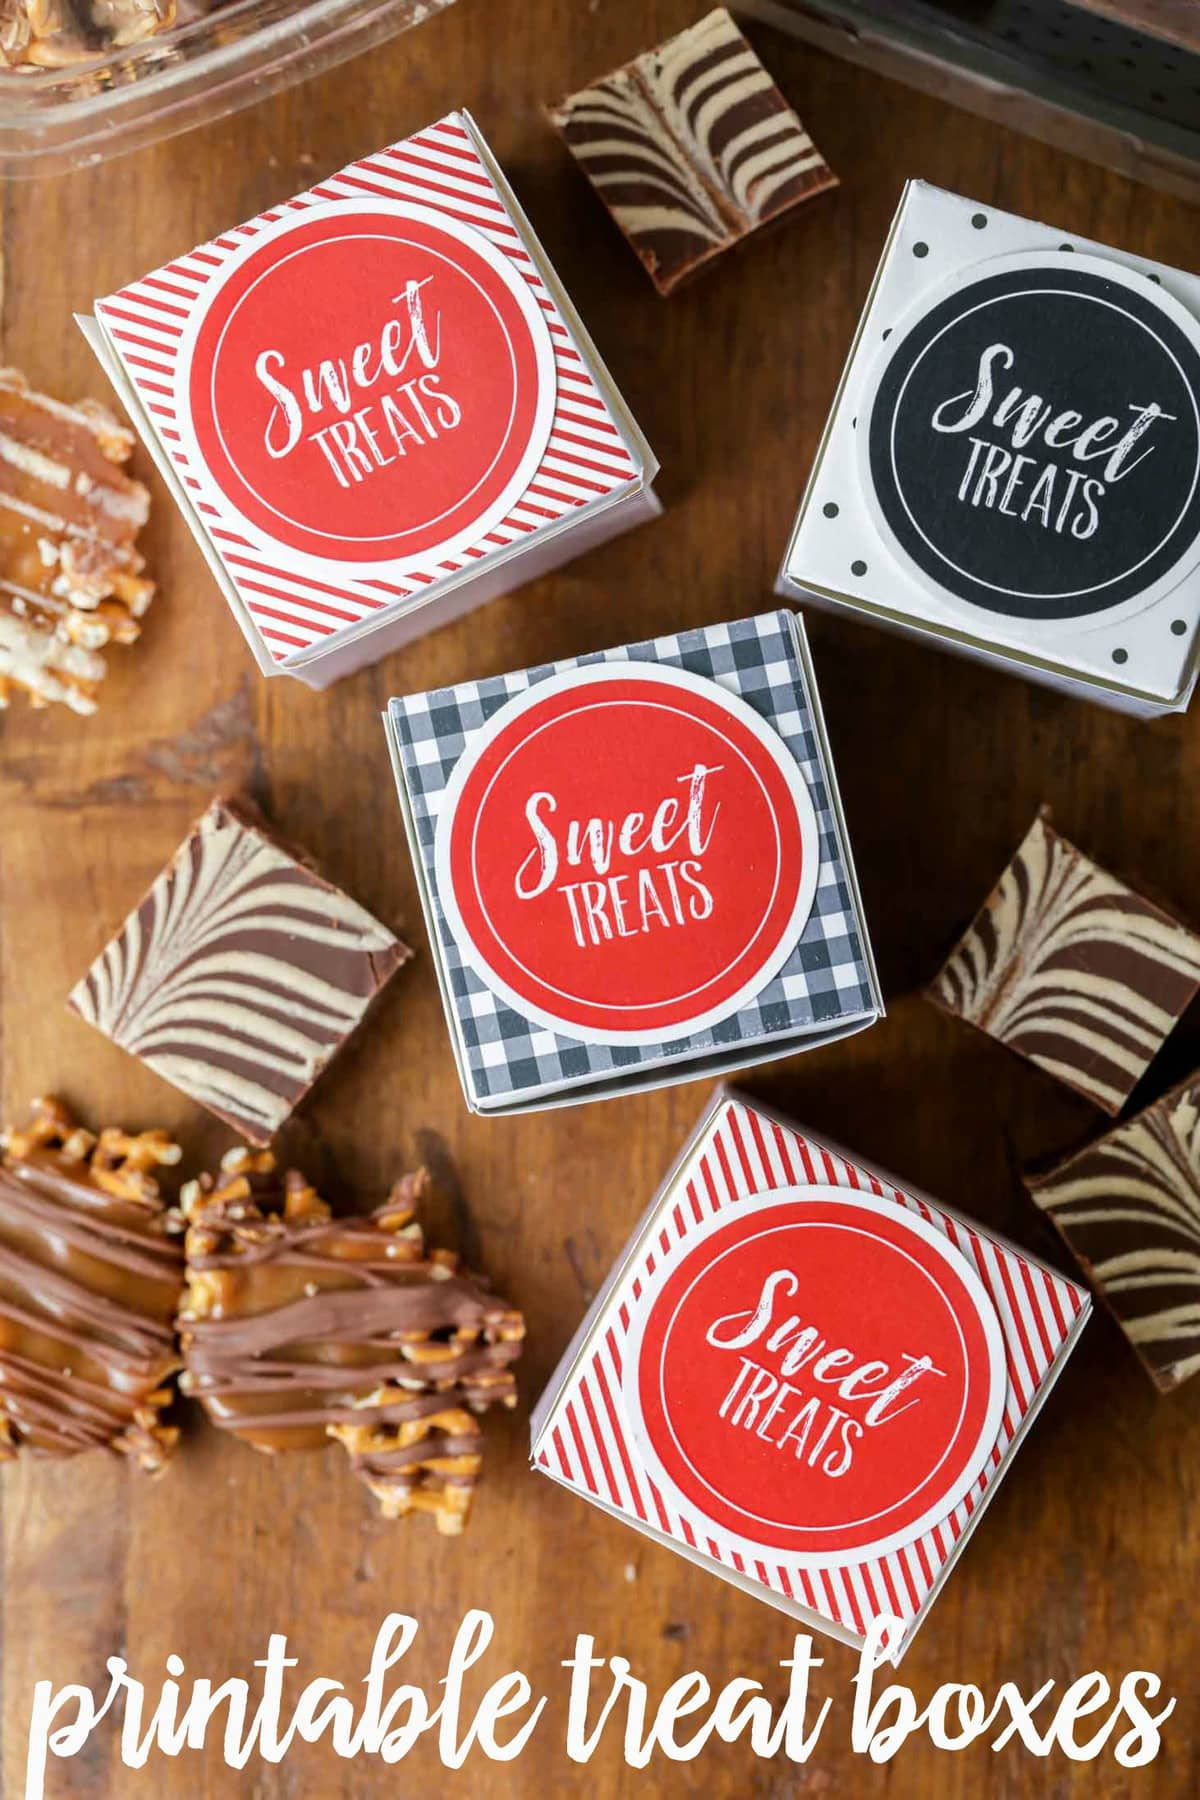 Treat Boxes - free download in several designs!